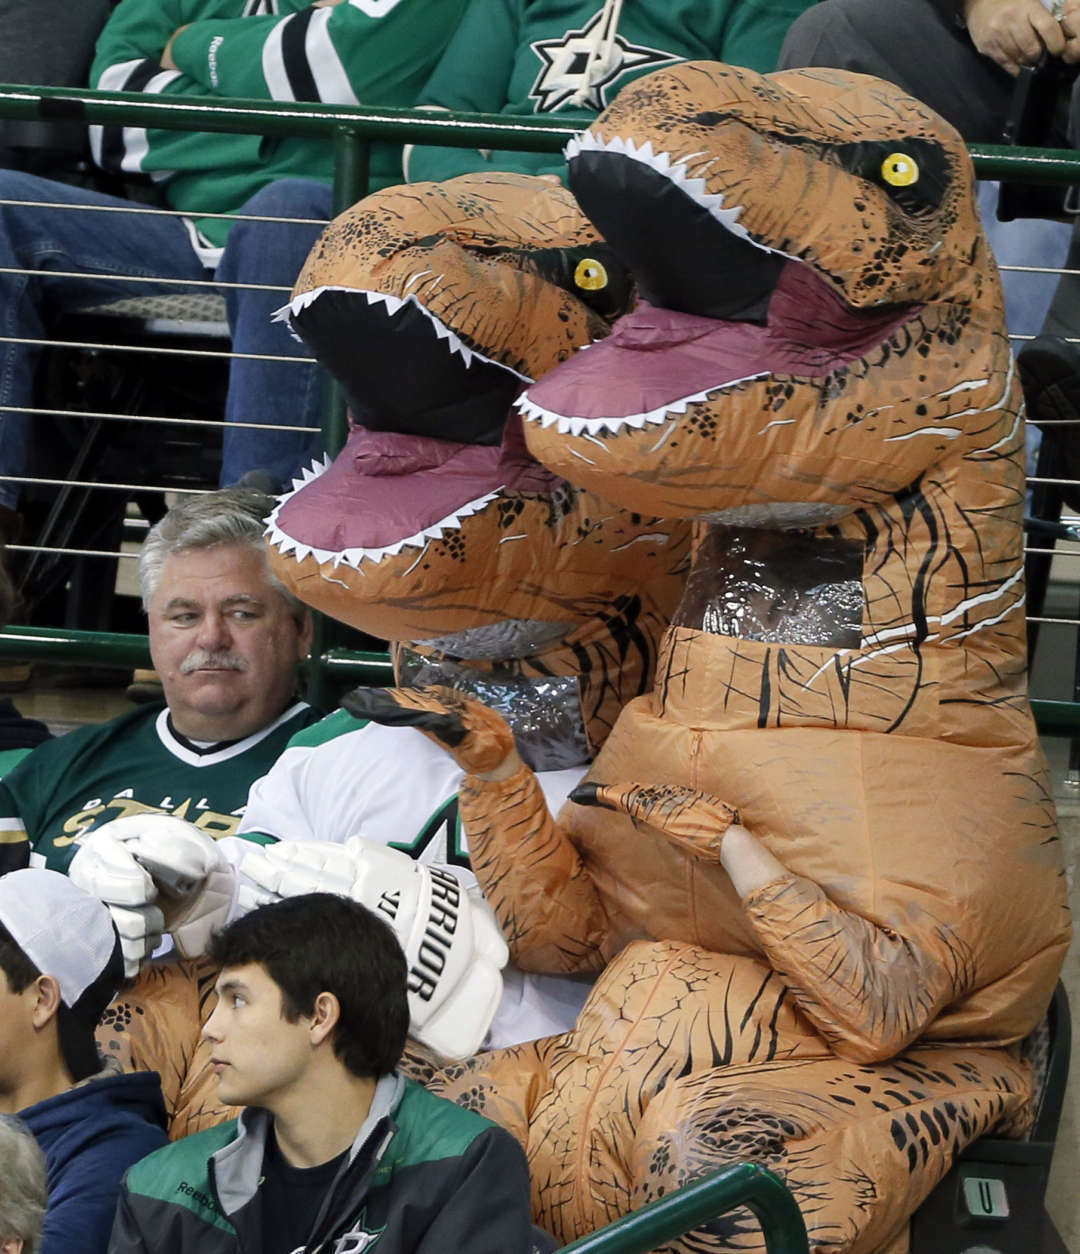 A Dallas Stars fan, left, watches two fans dressed in dinosaur costumes cheer during the third period of the Stars' NHL hockey game against the Washington Capitals on Saturday, Jan. 21, 2017, in Dallas. (AP Photo/Tony Gutierrez)